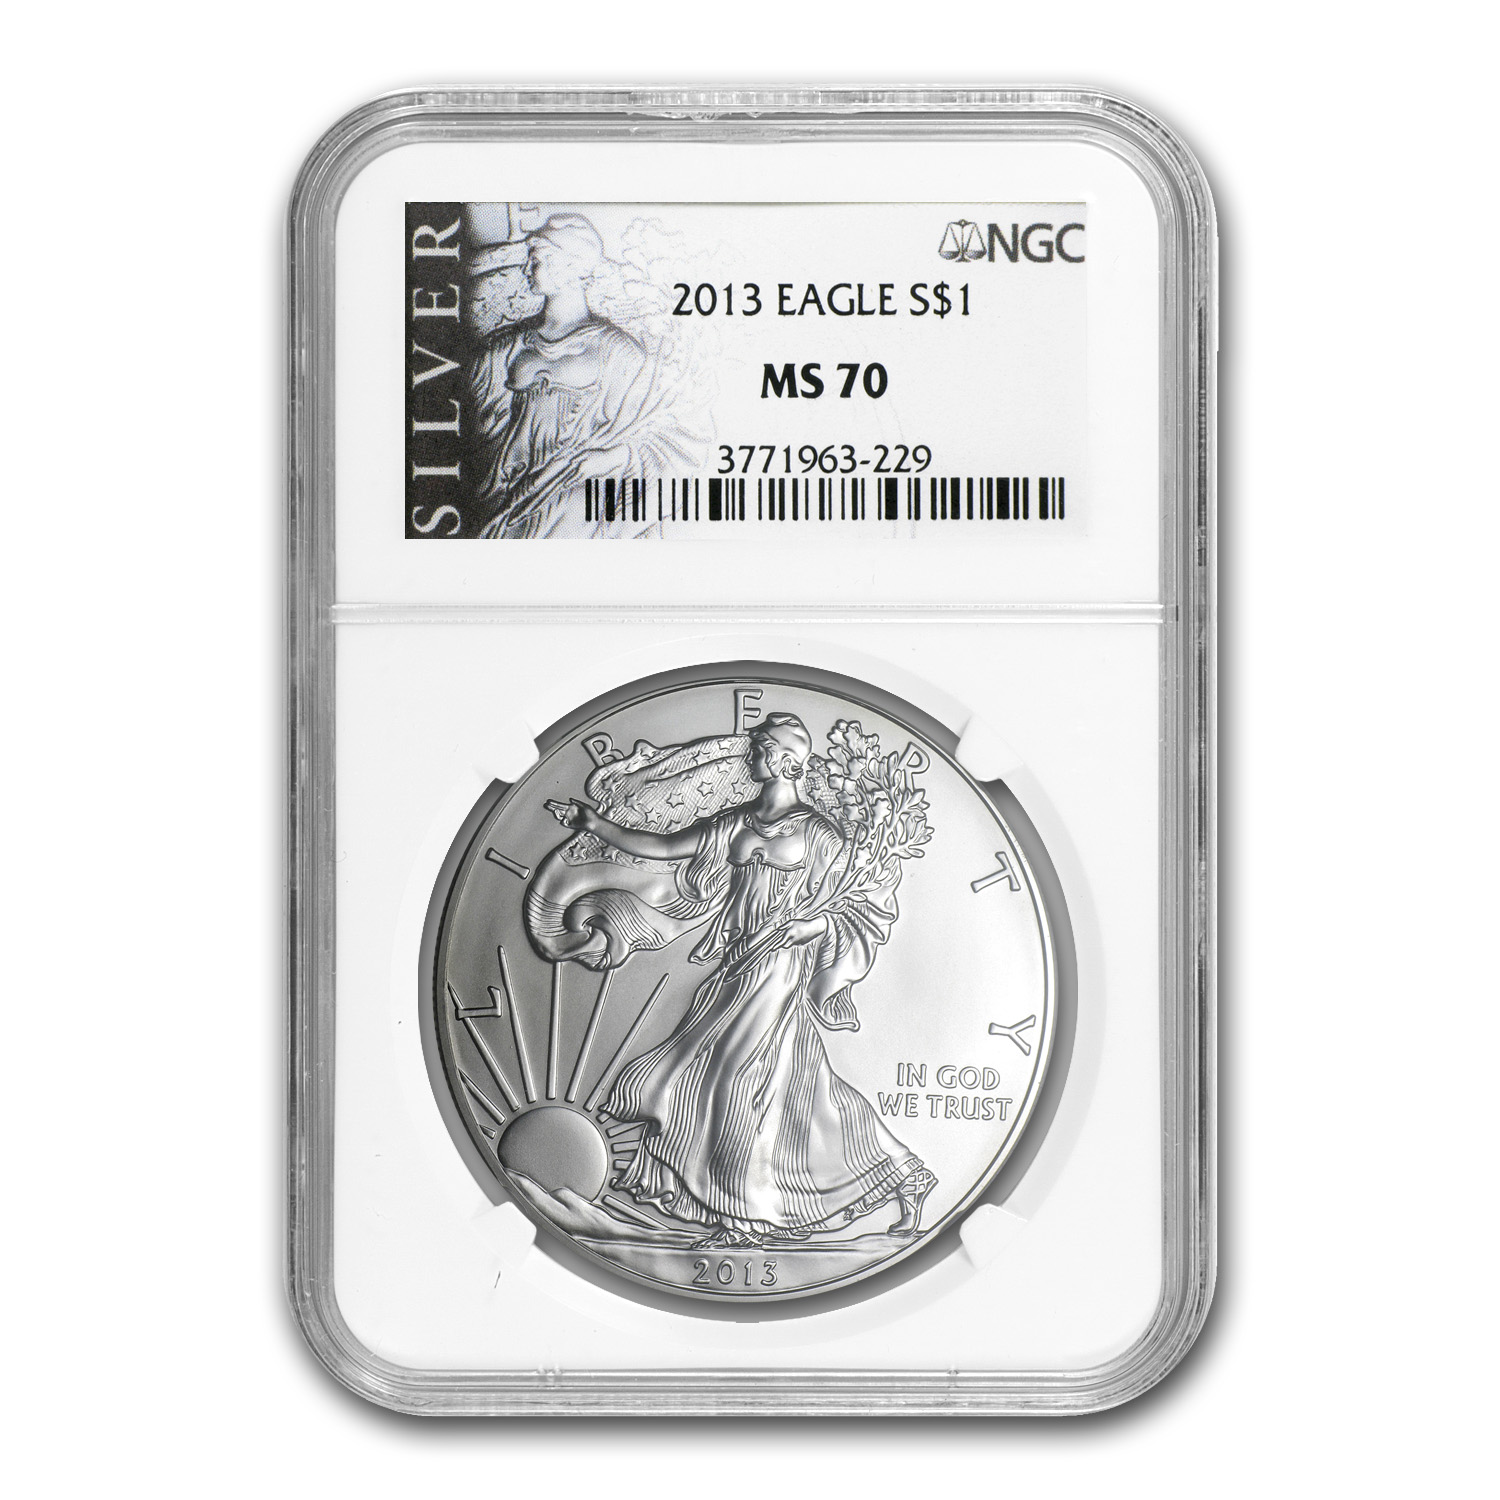 2013 Silver American Eagle MS-70 NGC (ALS Label)